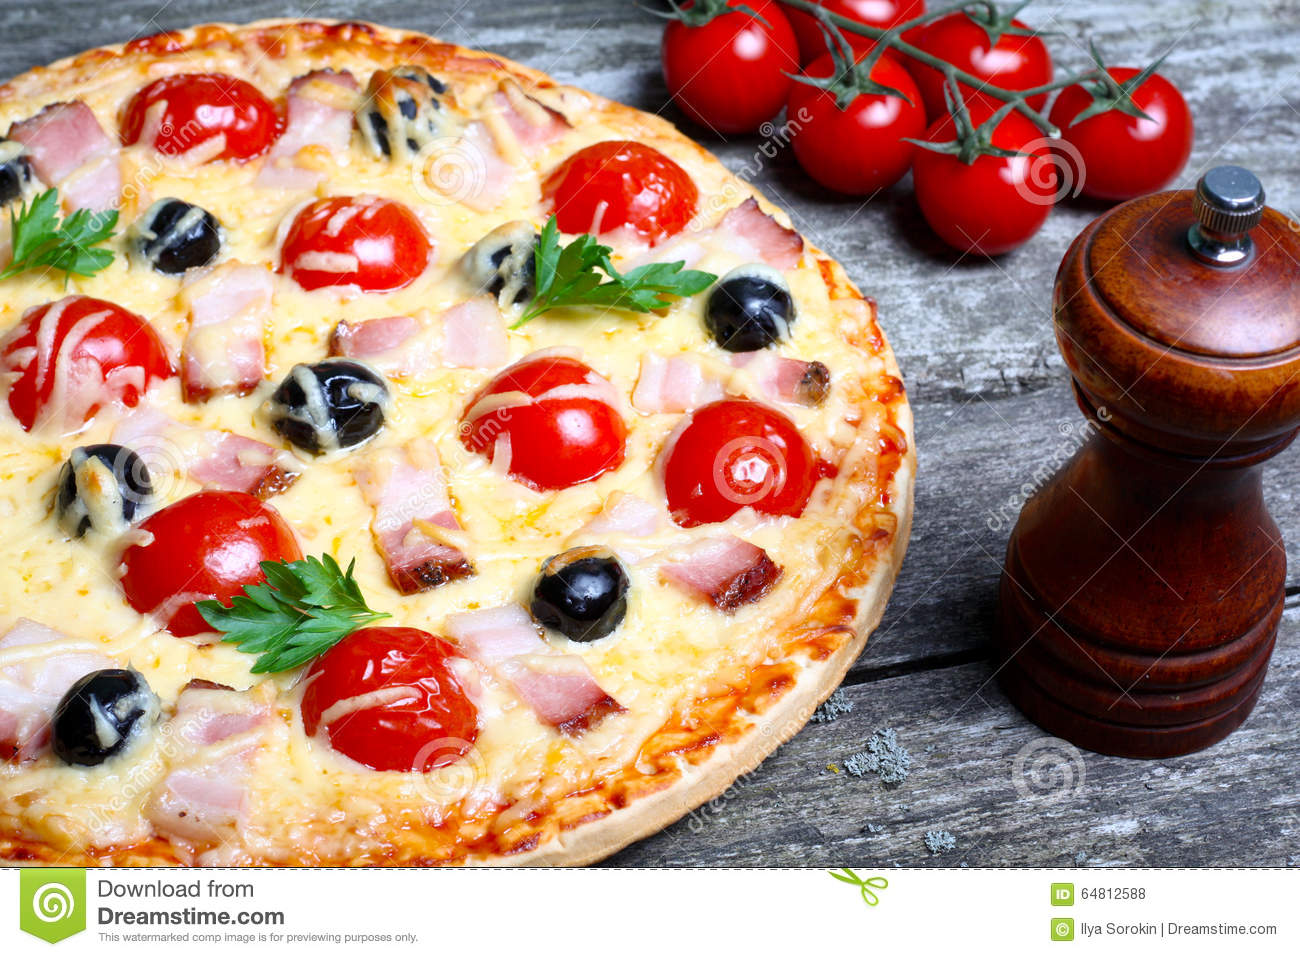 Pizza With Bacon, Olives And Tomato Stock Photo - Image: 64812588